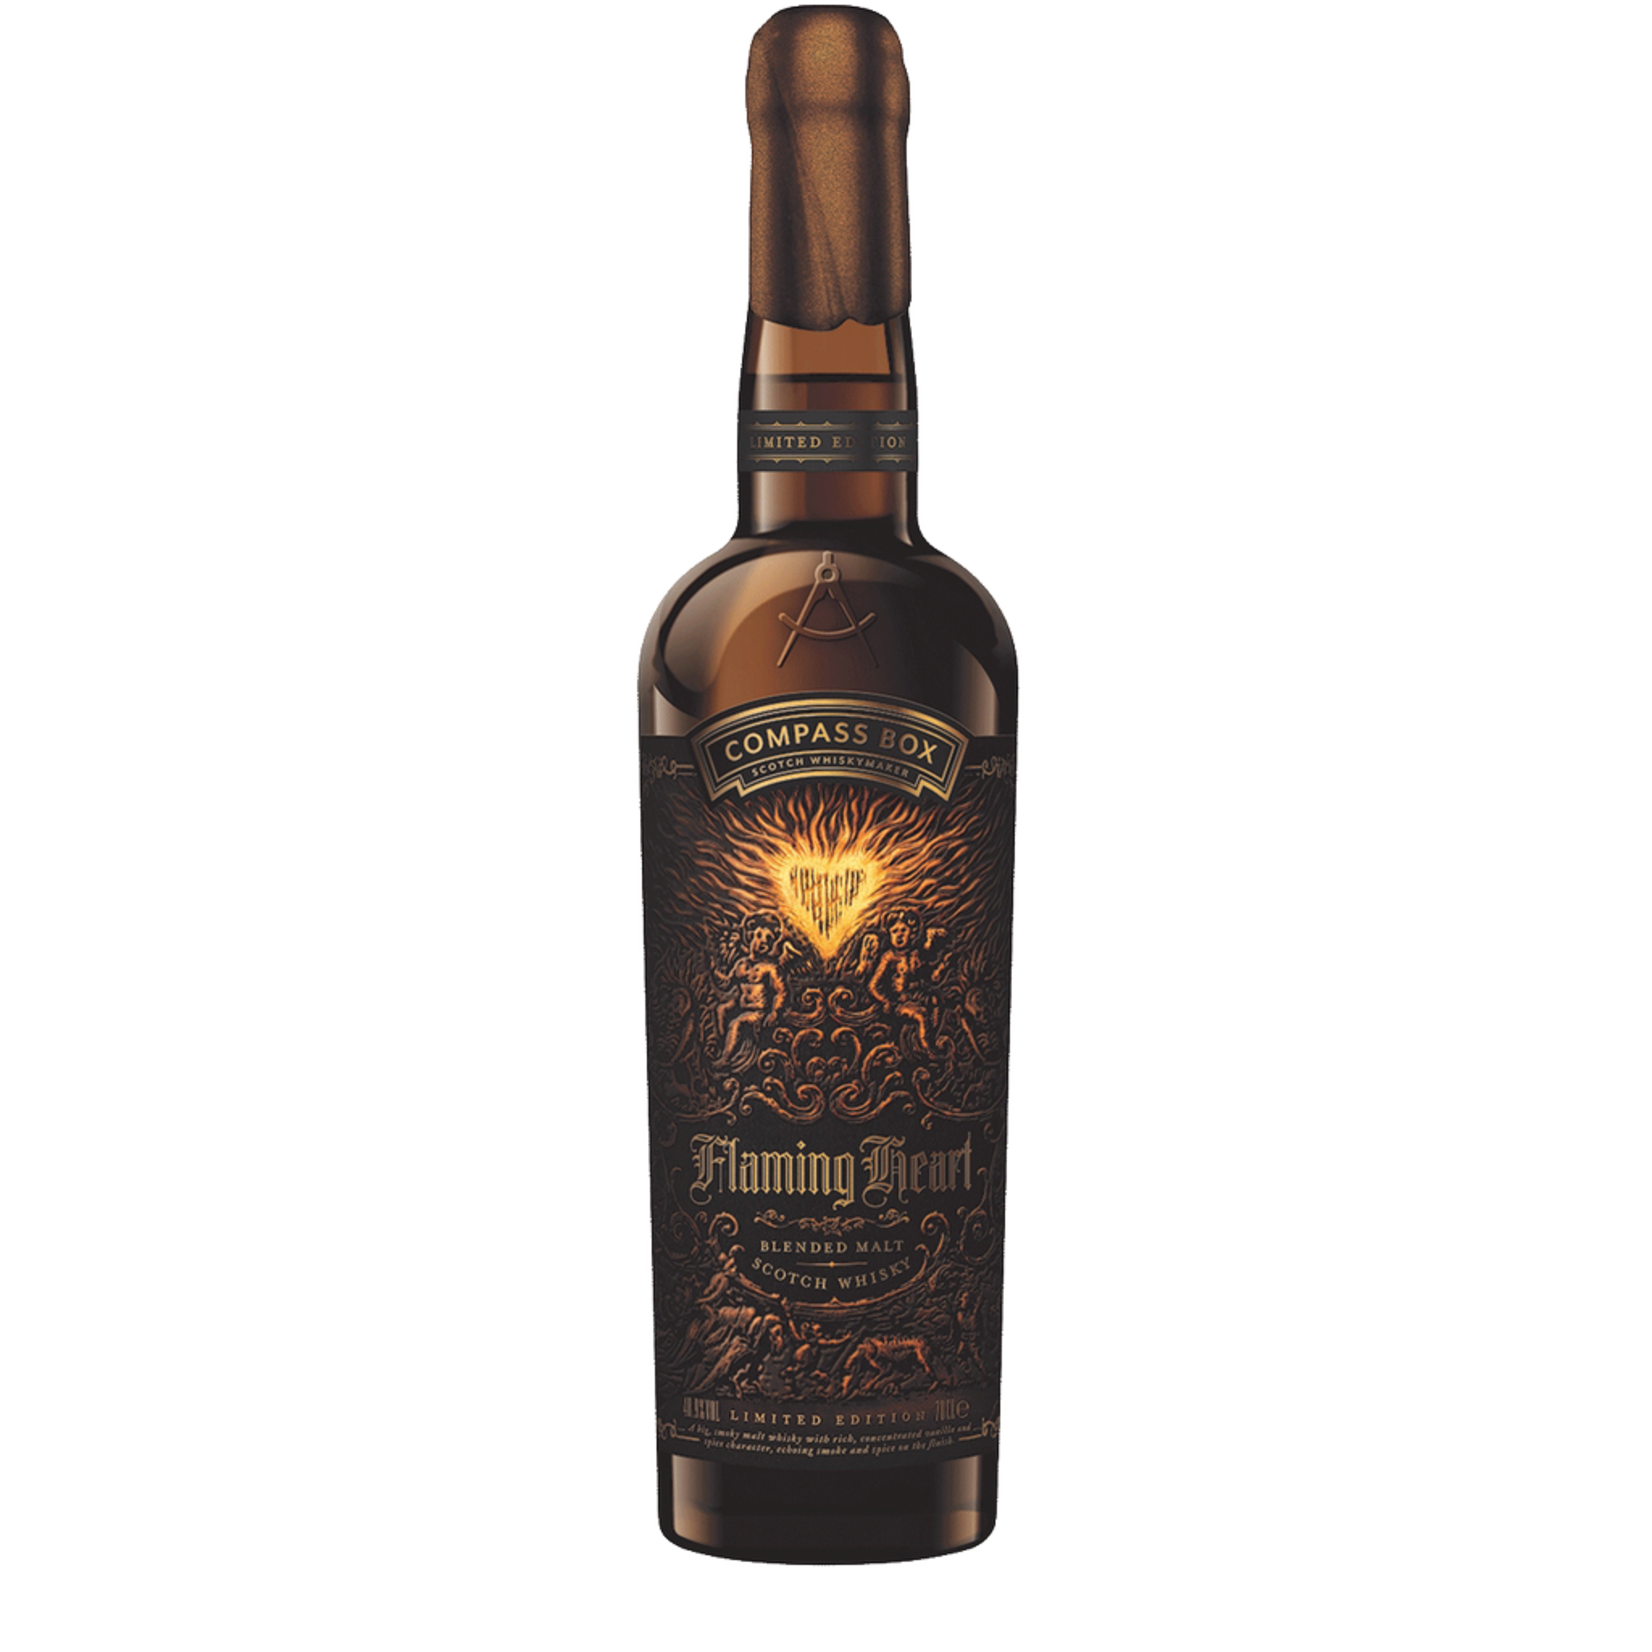 Spirits Compass Box Flaming Heart 6th Edition 2018 Limited Edition